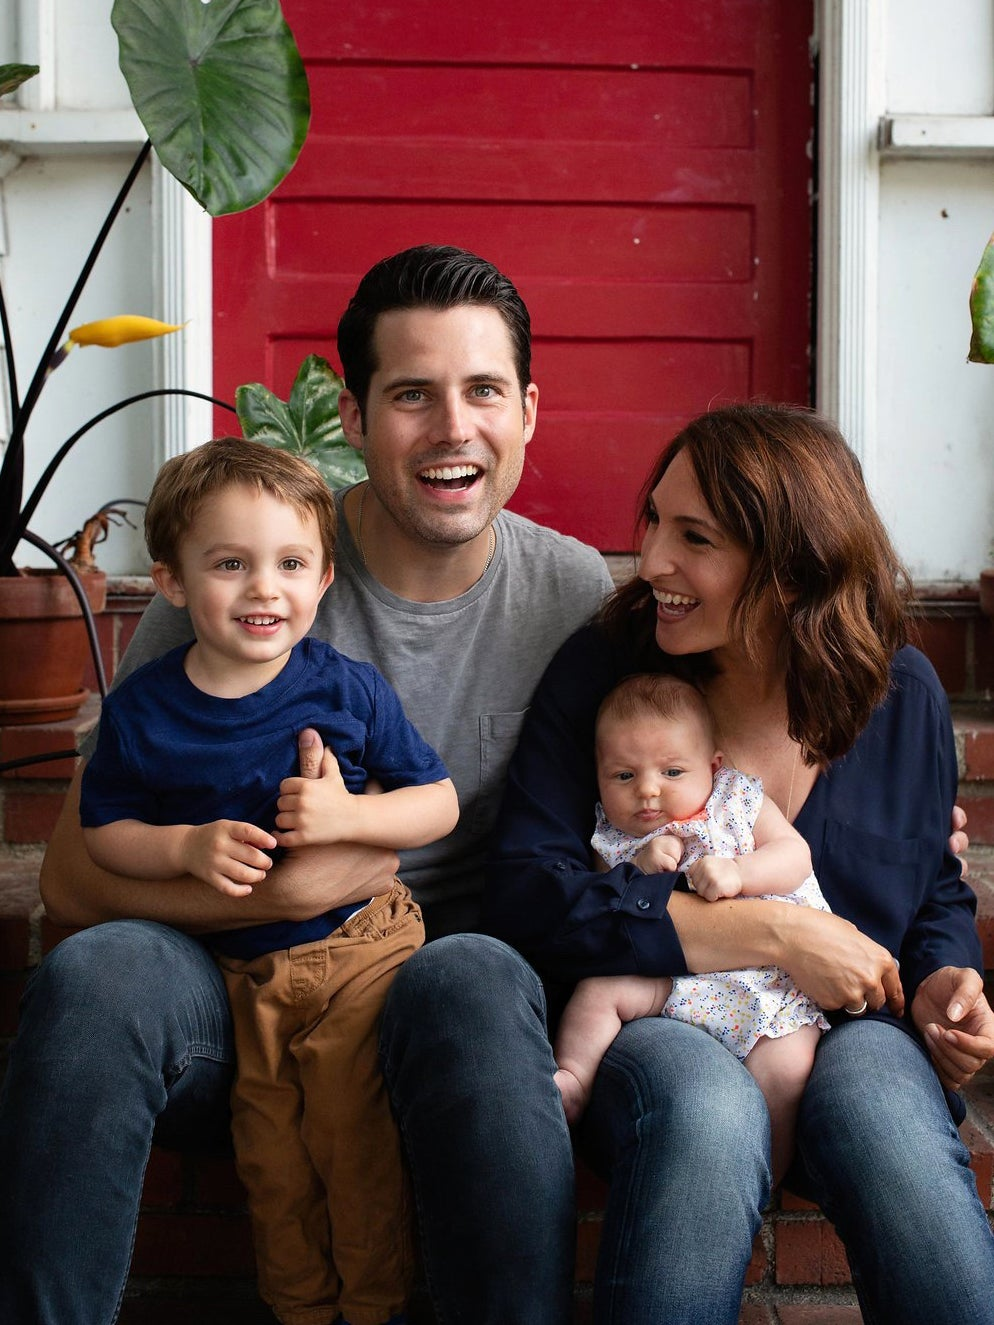 Natalie and Chris Bruss at home with their kids